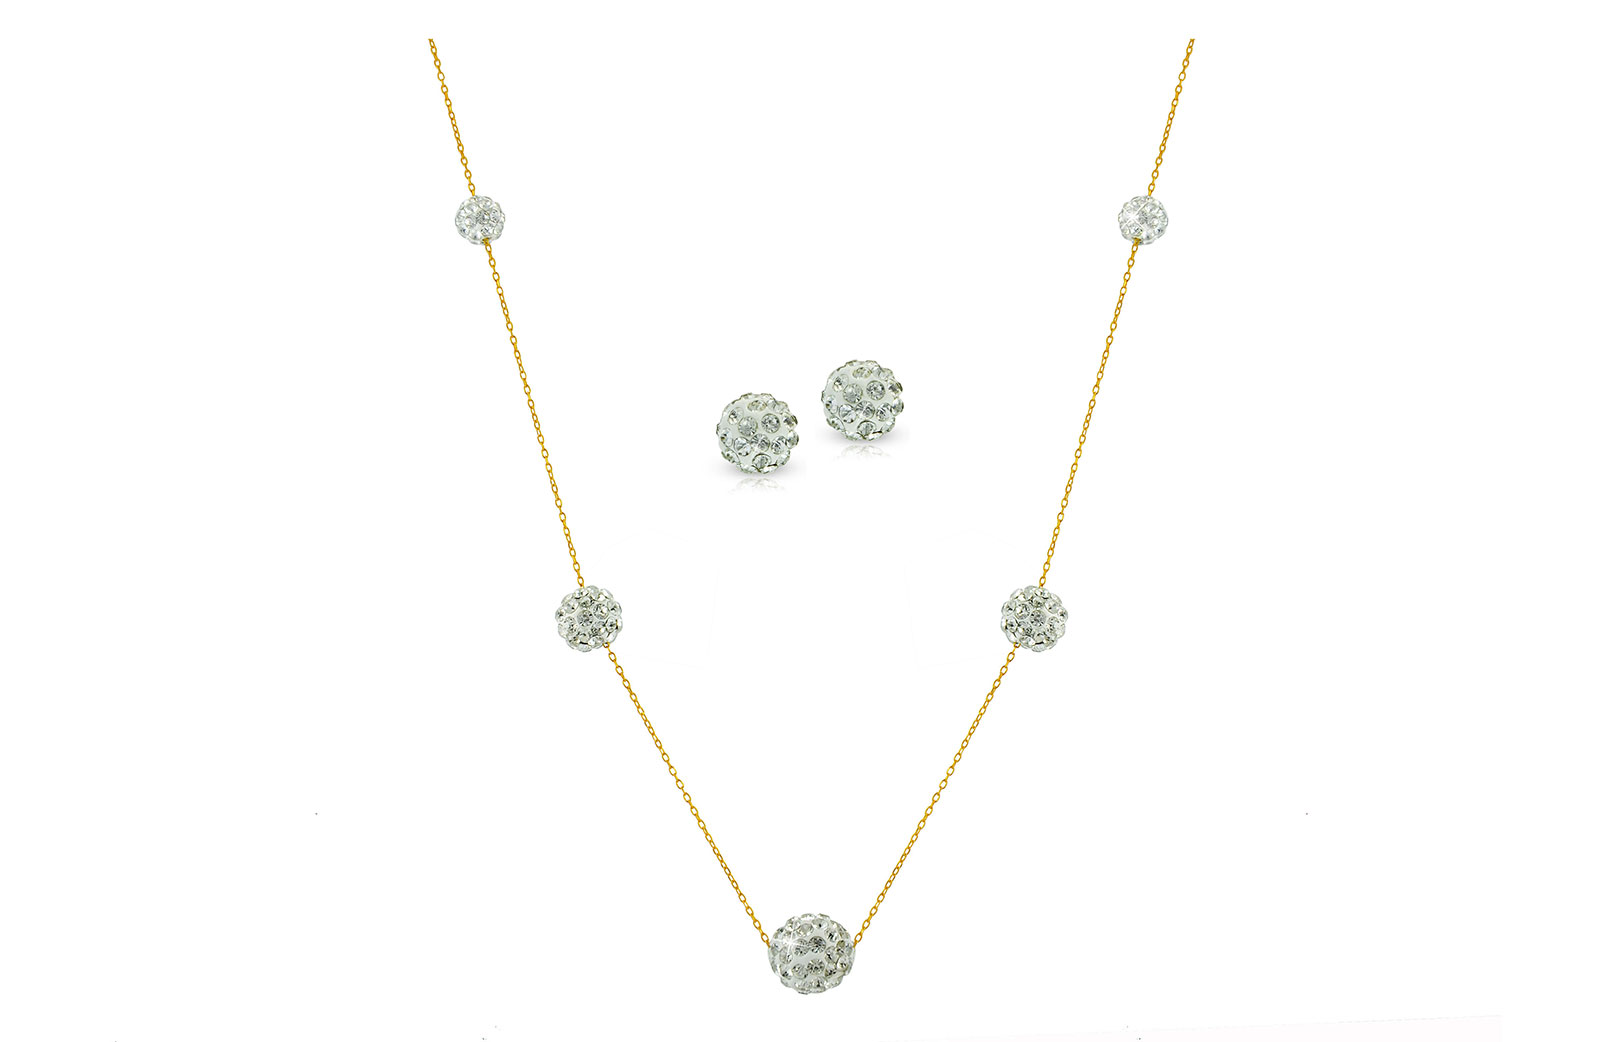 Vera Perla 18k Solid Gold Built-in Crystal Ball Necklace & Earrings